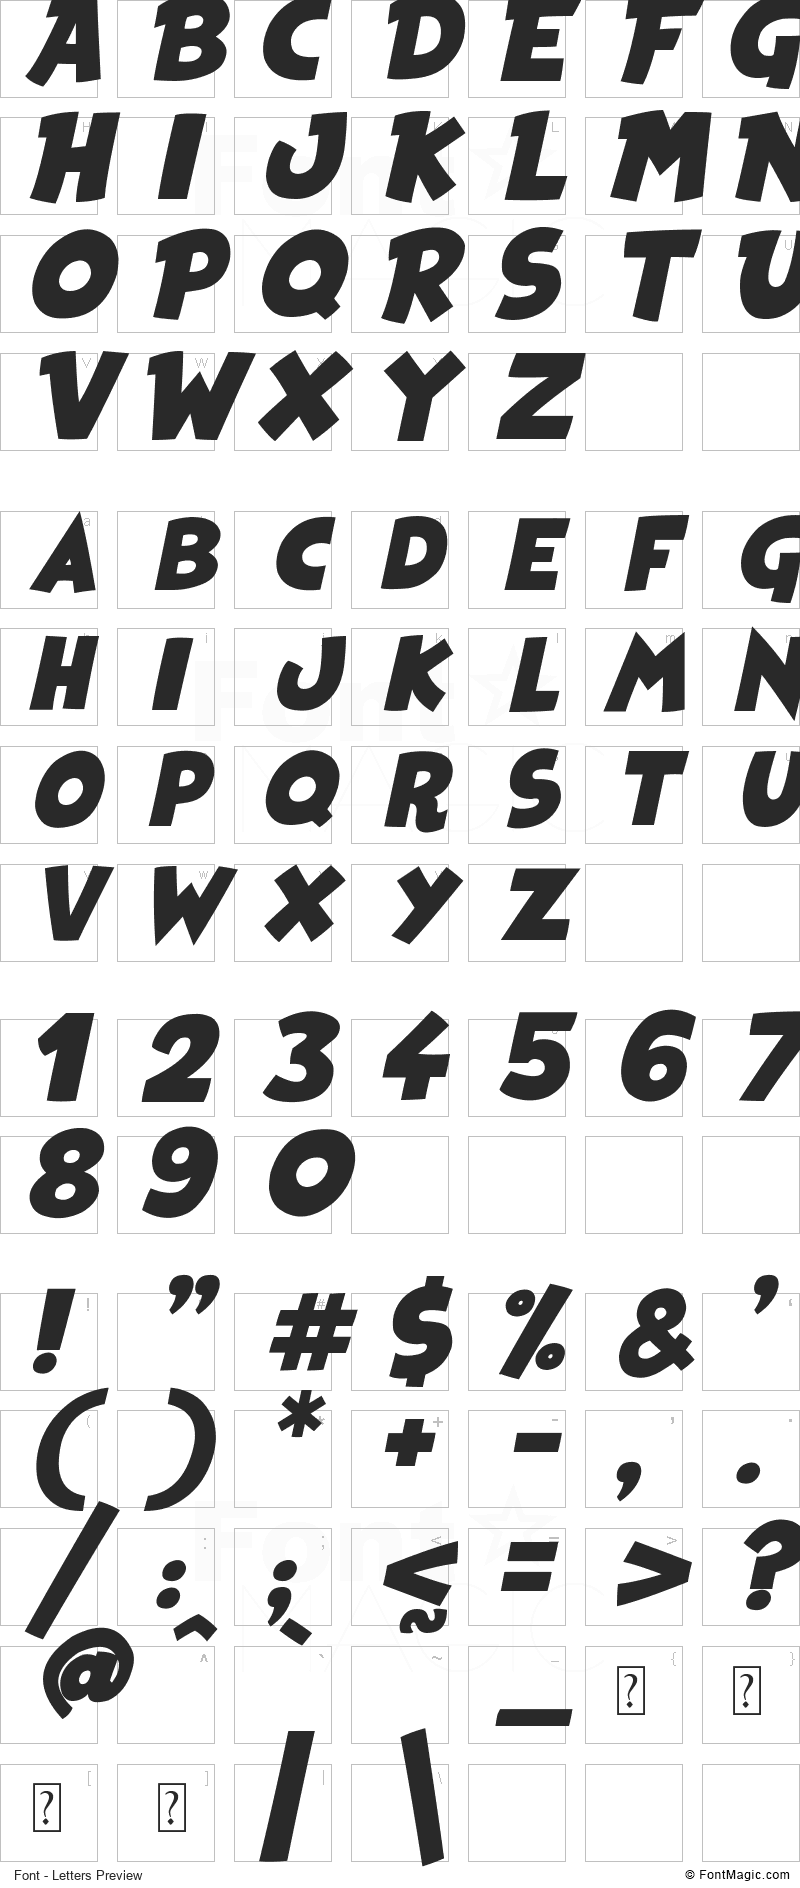 Heroes Legend Font - All Latters Preview Chart